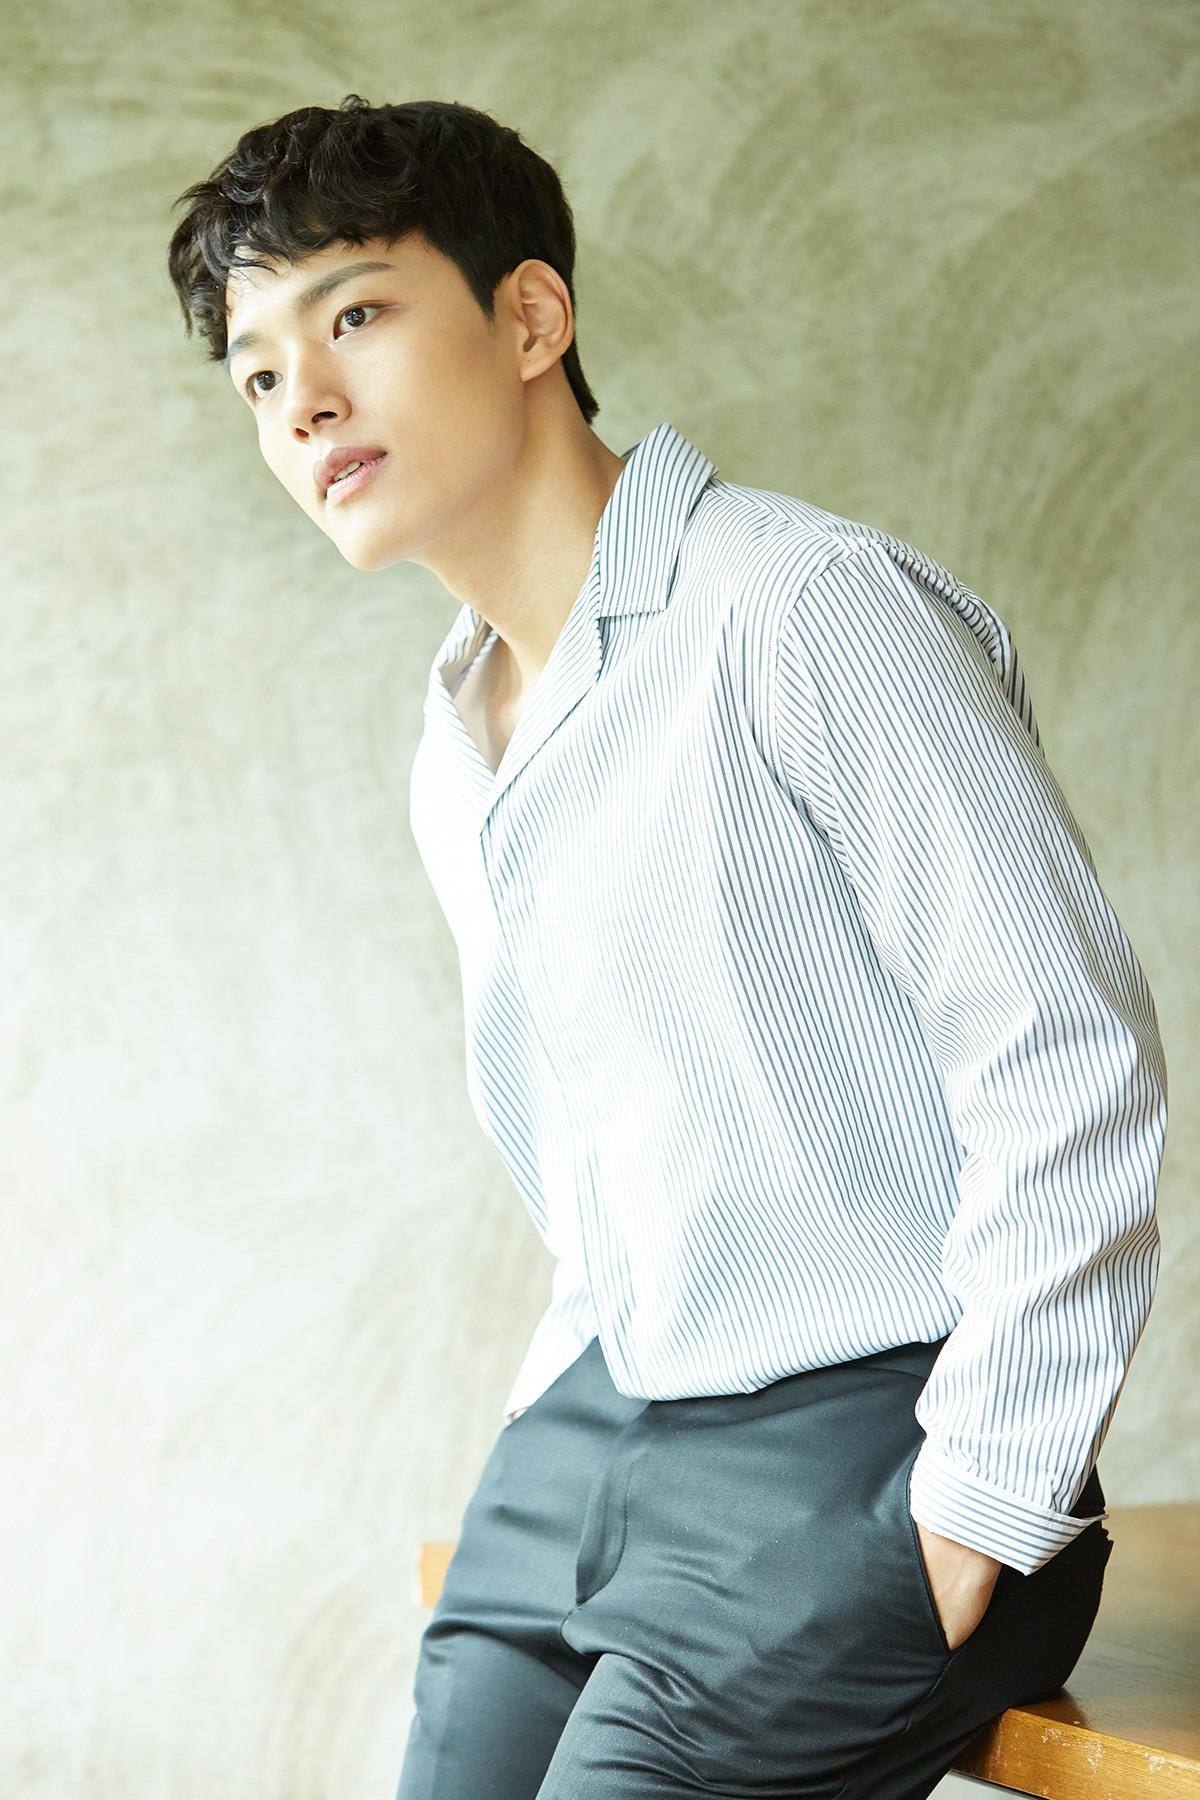 Yeo Jin Goo Related Keywords & Suggestions